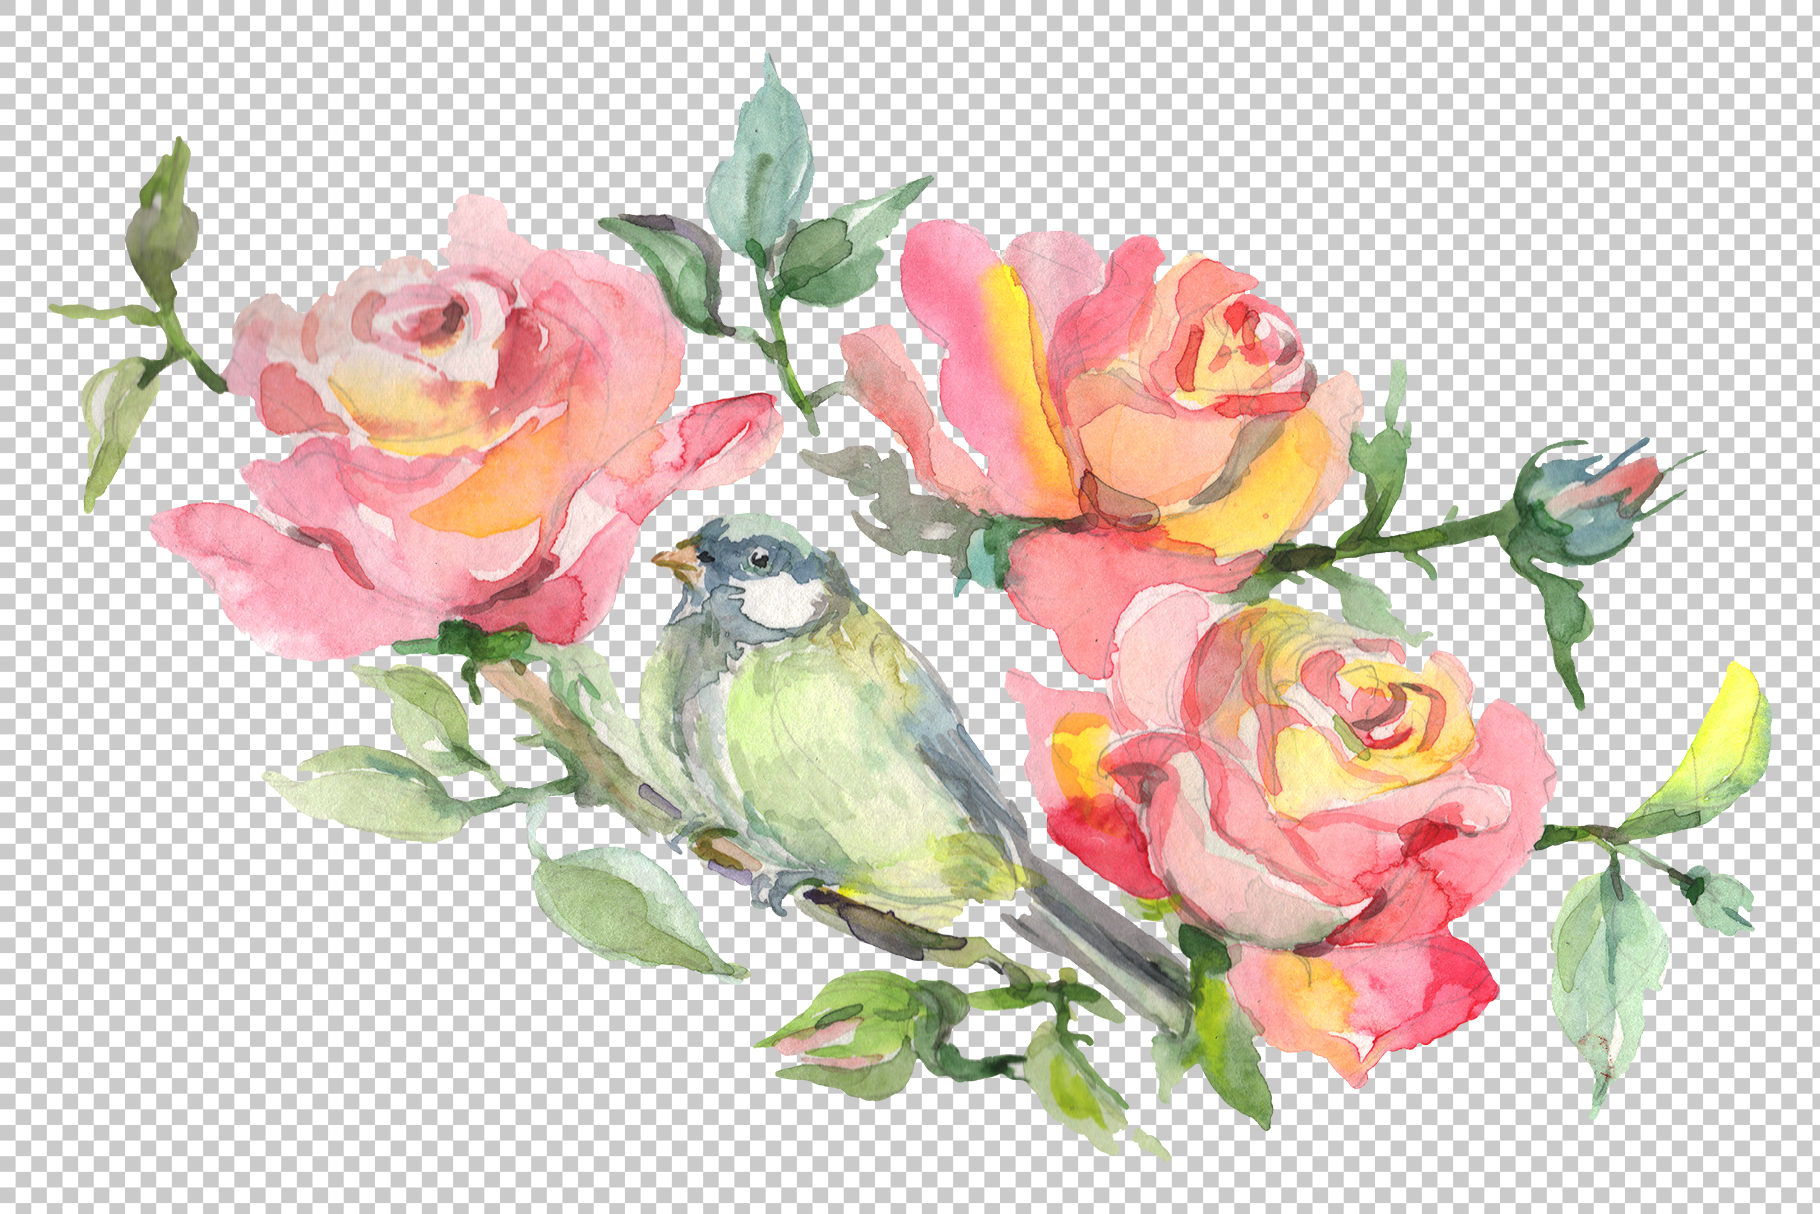 Bouquet with roses romance watercolor png example image 4